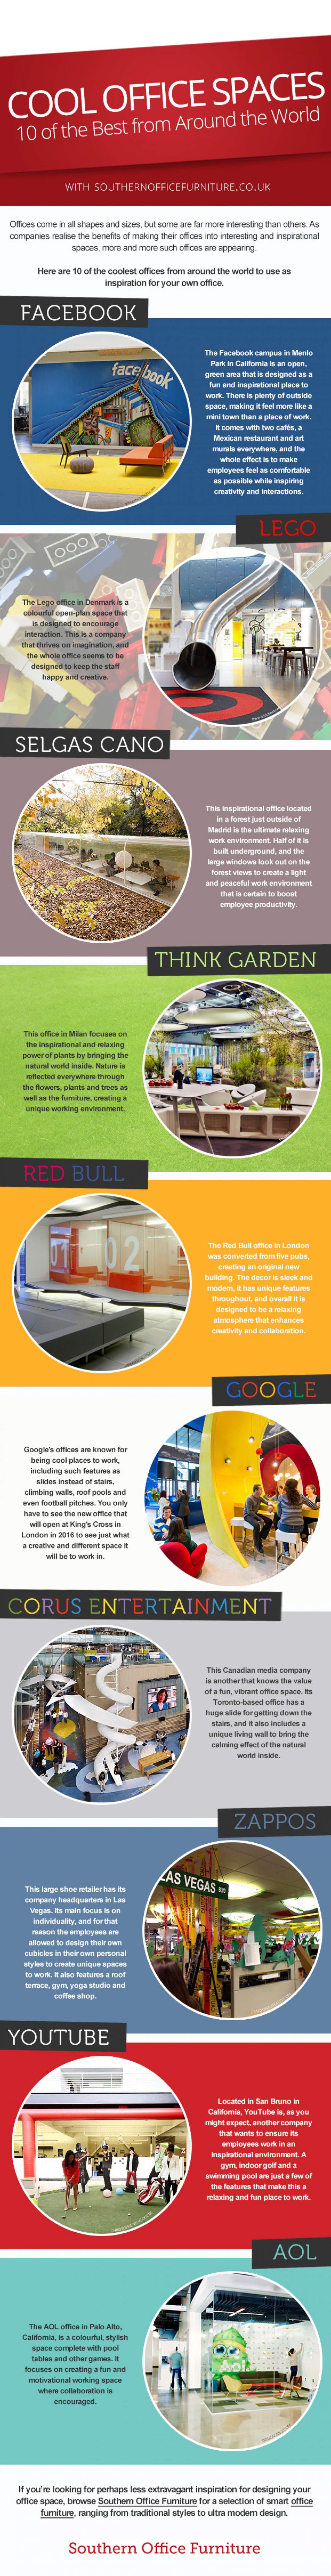 10 of the Best Offices from Around the World Infographic